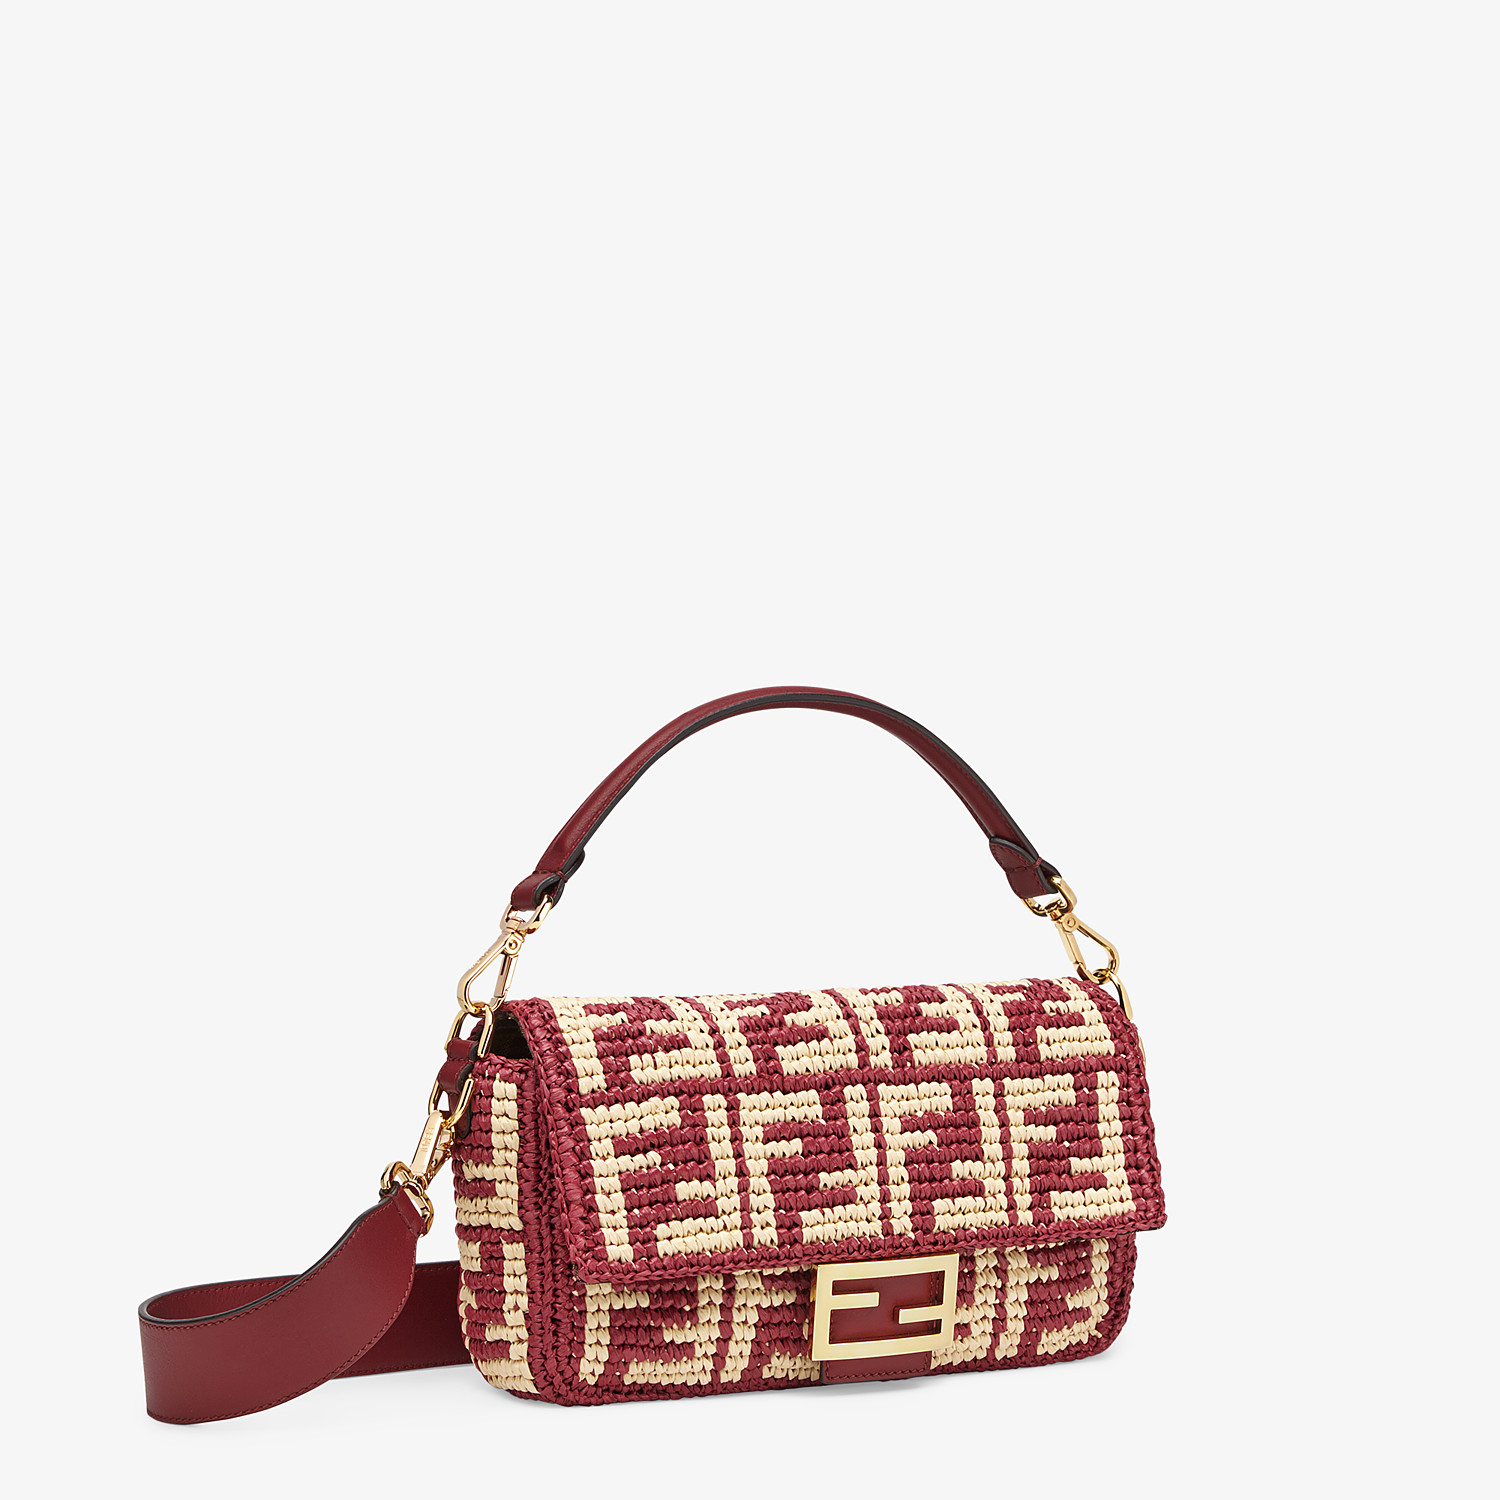 FENDI BAGUETTE - Burgundy raffia FF bag - view 3 detail